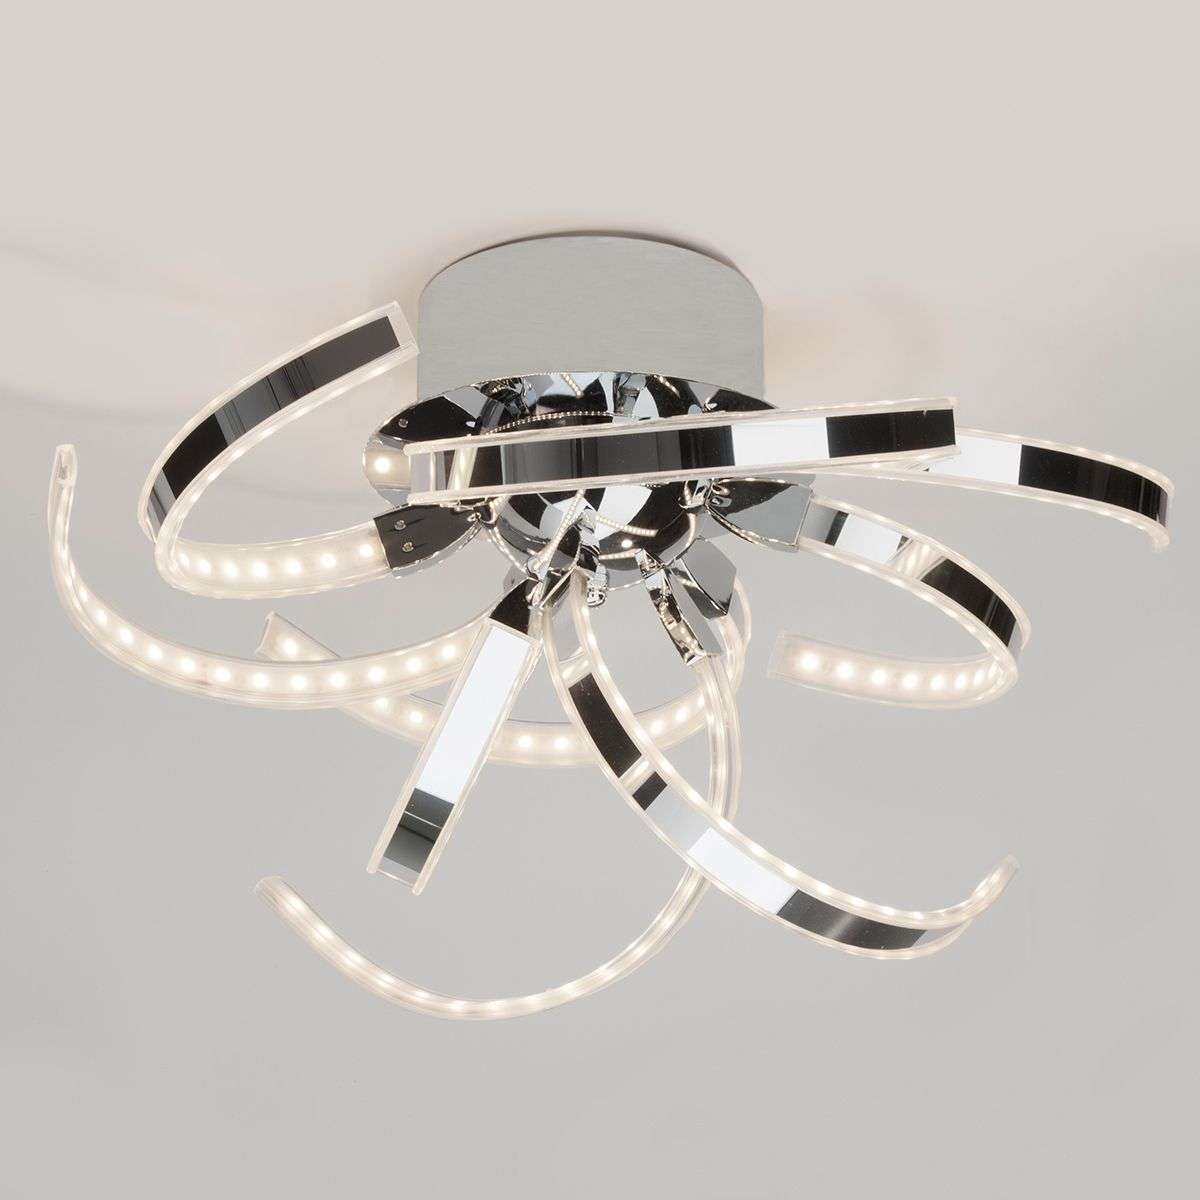 Appealing LED ceiling light Yunan-1509049-31